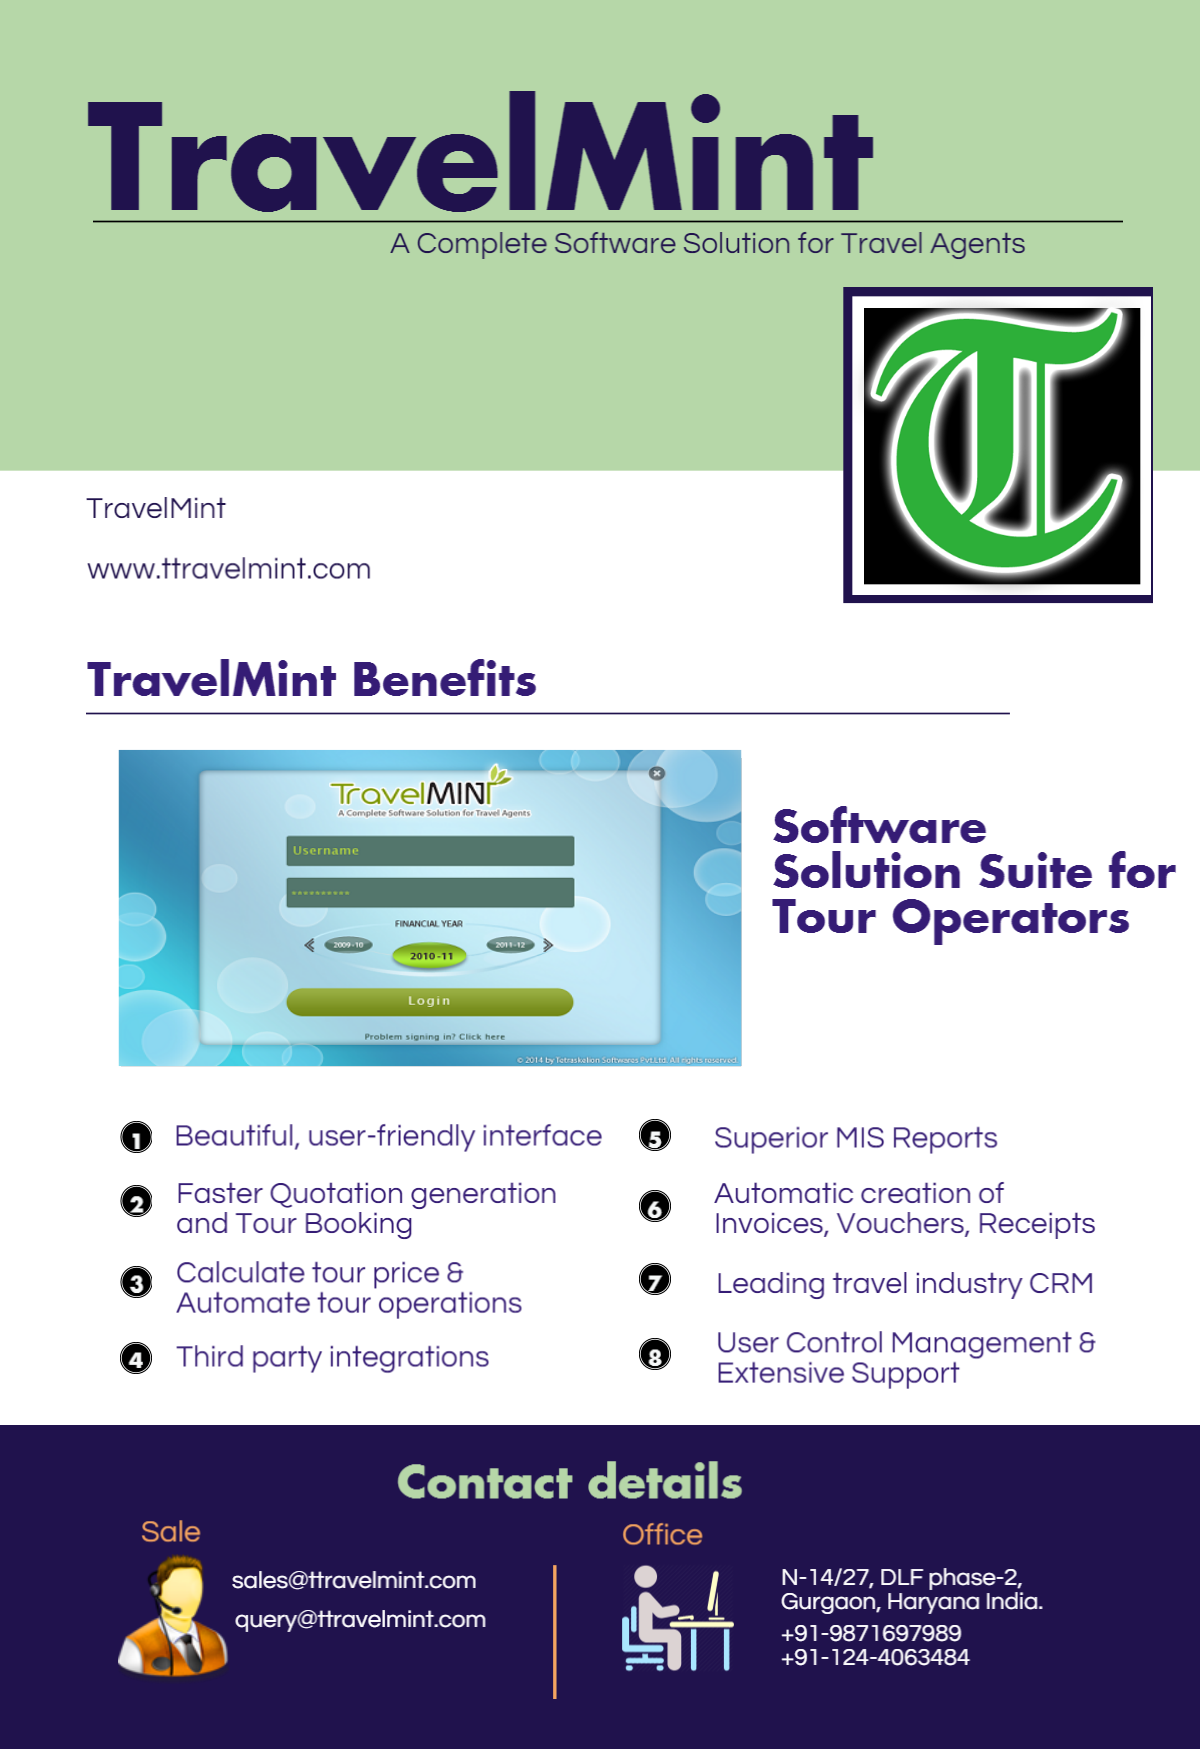 Explore The Benefits Of Travelmint Solution For Travel Industry